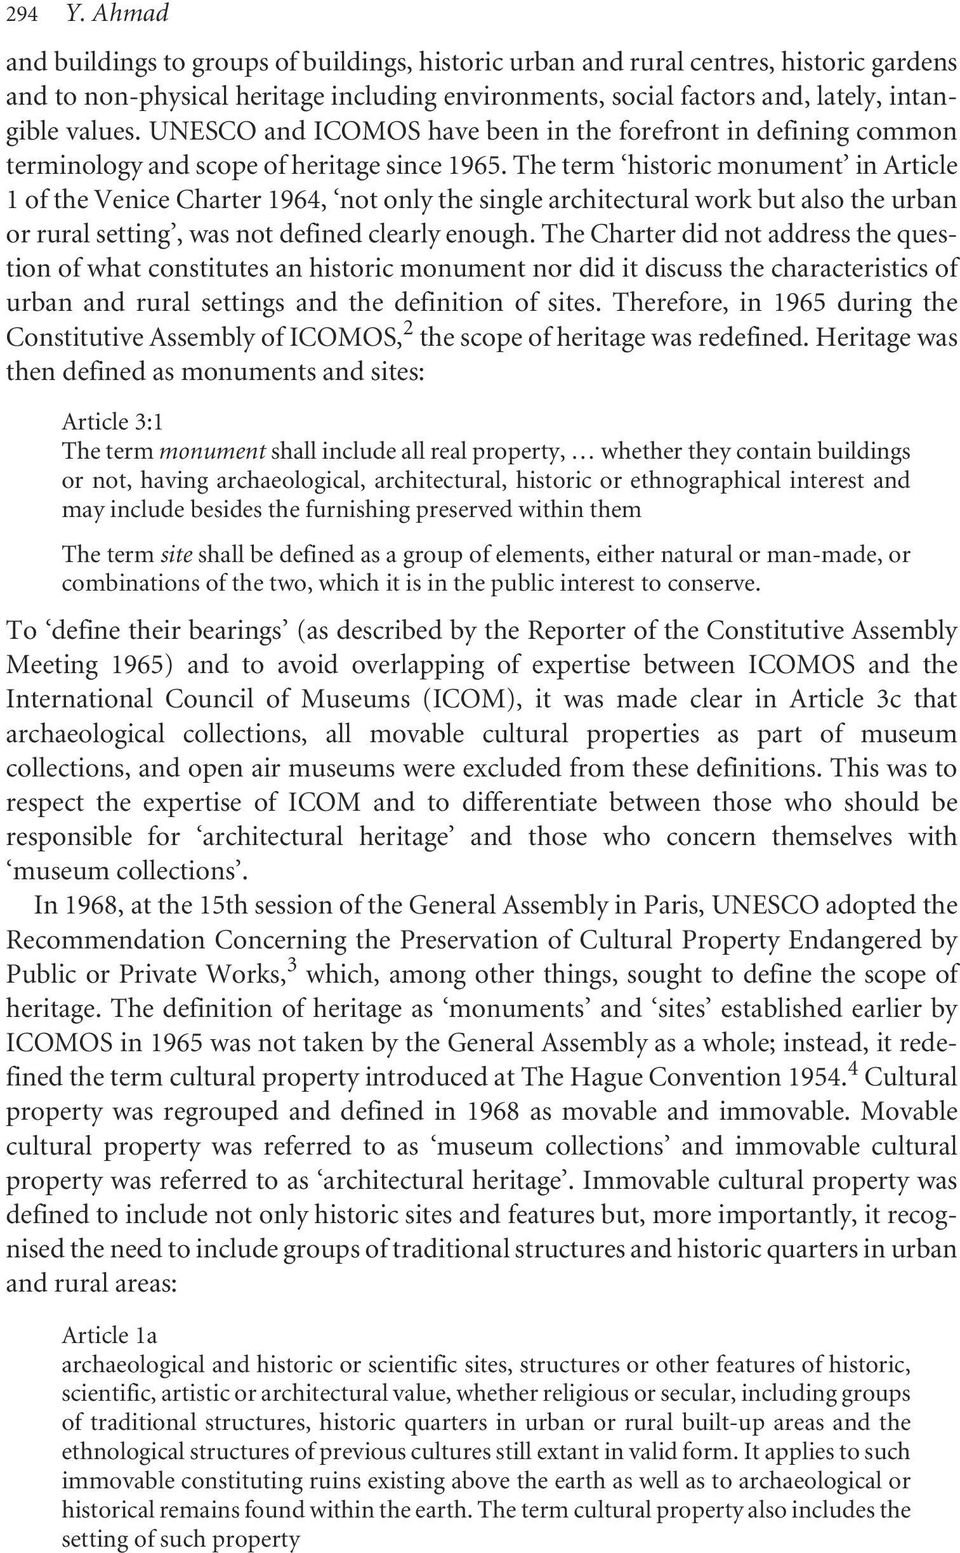 UNESCO and ICOMOS have been in the forefront in defining common terminology and scope of heritage since 1965.